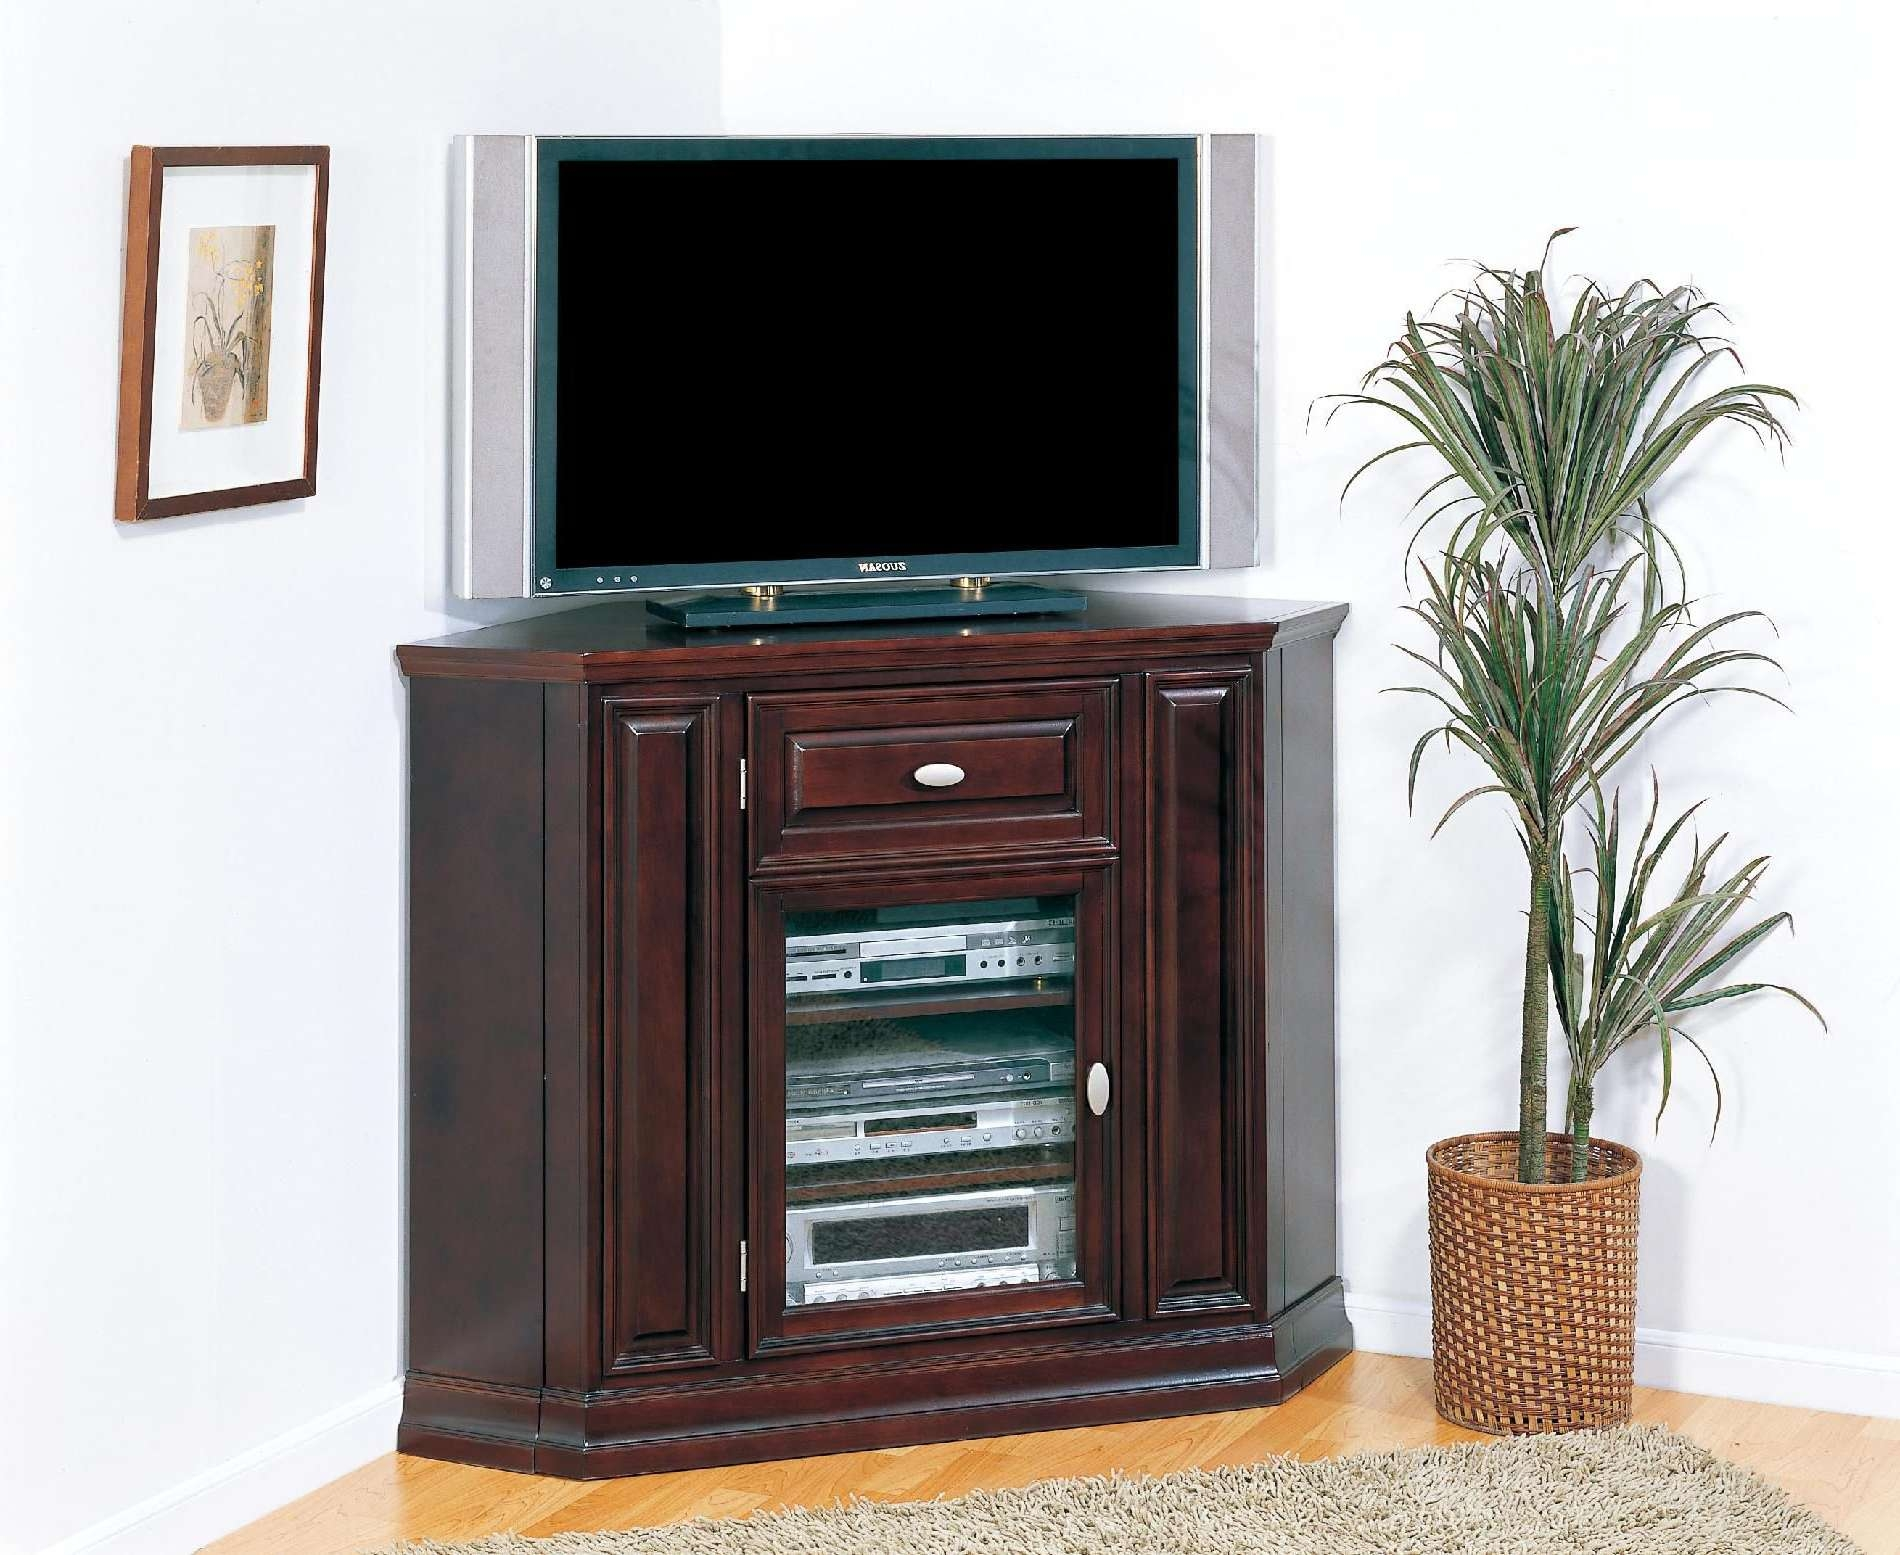 Tall Black Corner Tv Stand | Home Design Ideas Within Tall Black Tv Cabinets (View 16 of 20)